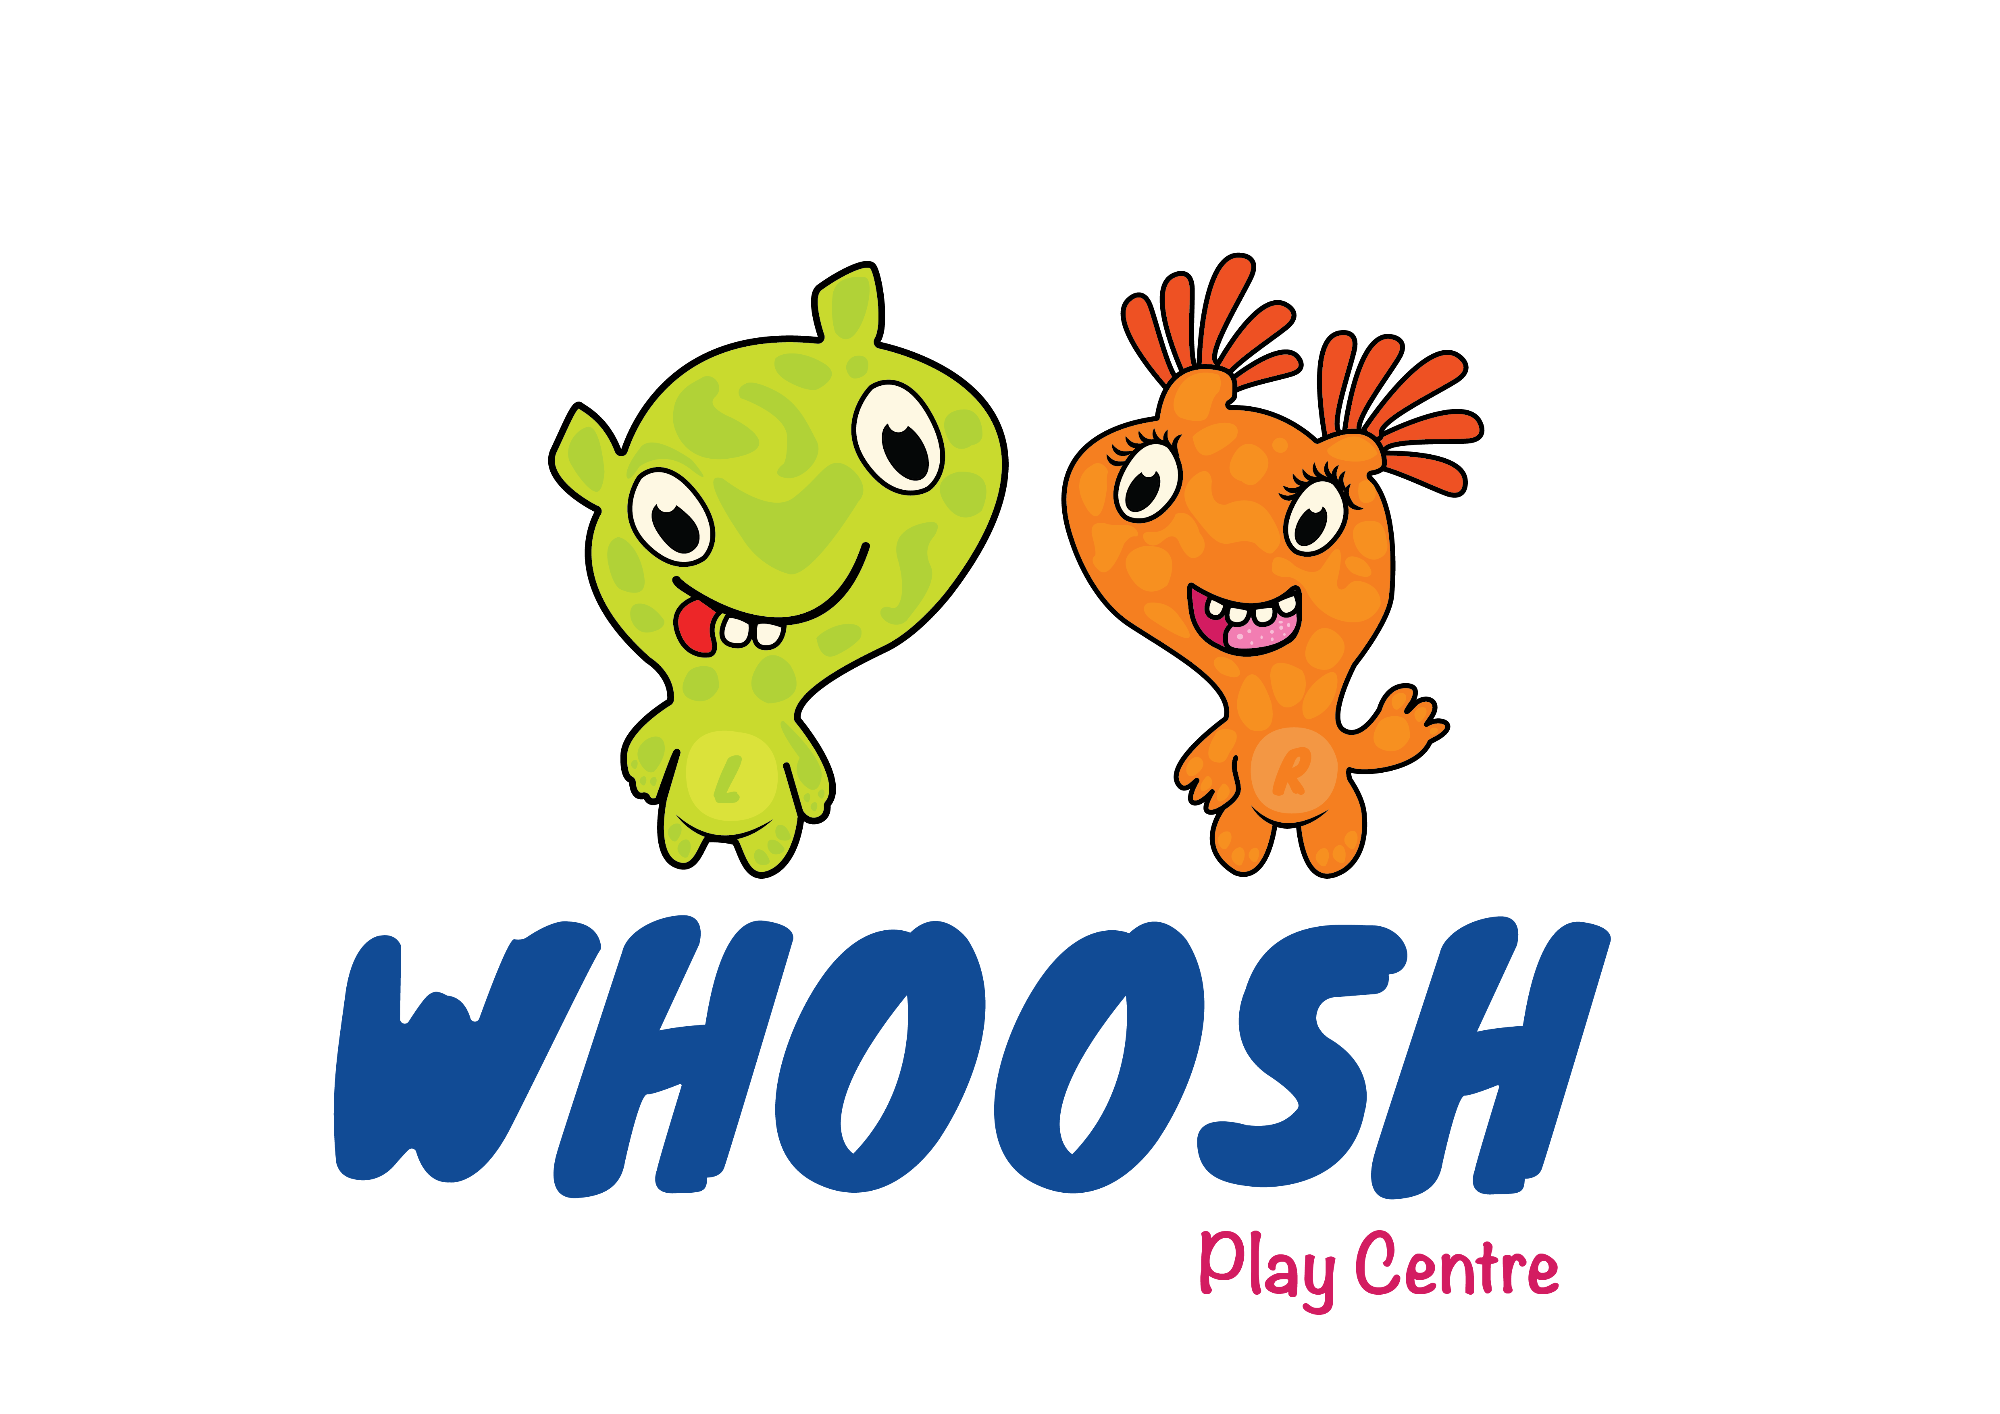 Whoosh Play Centre